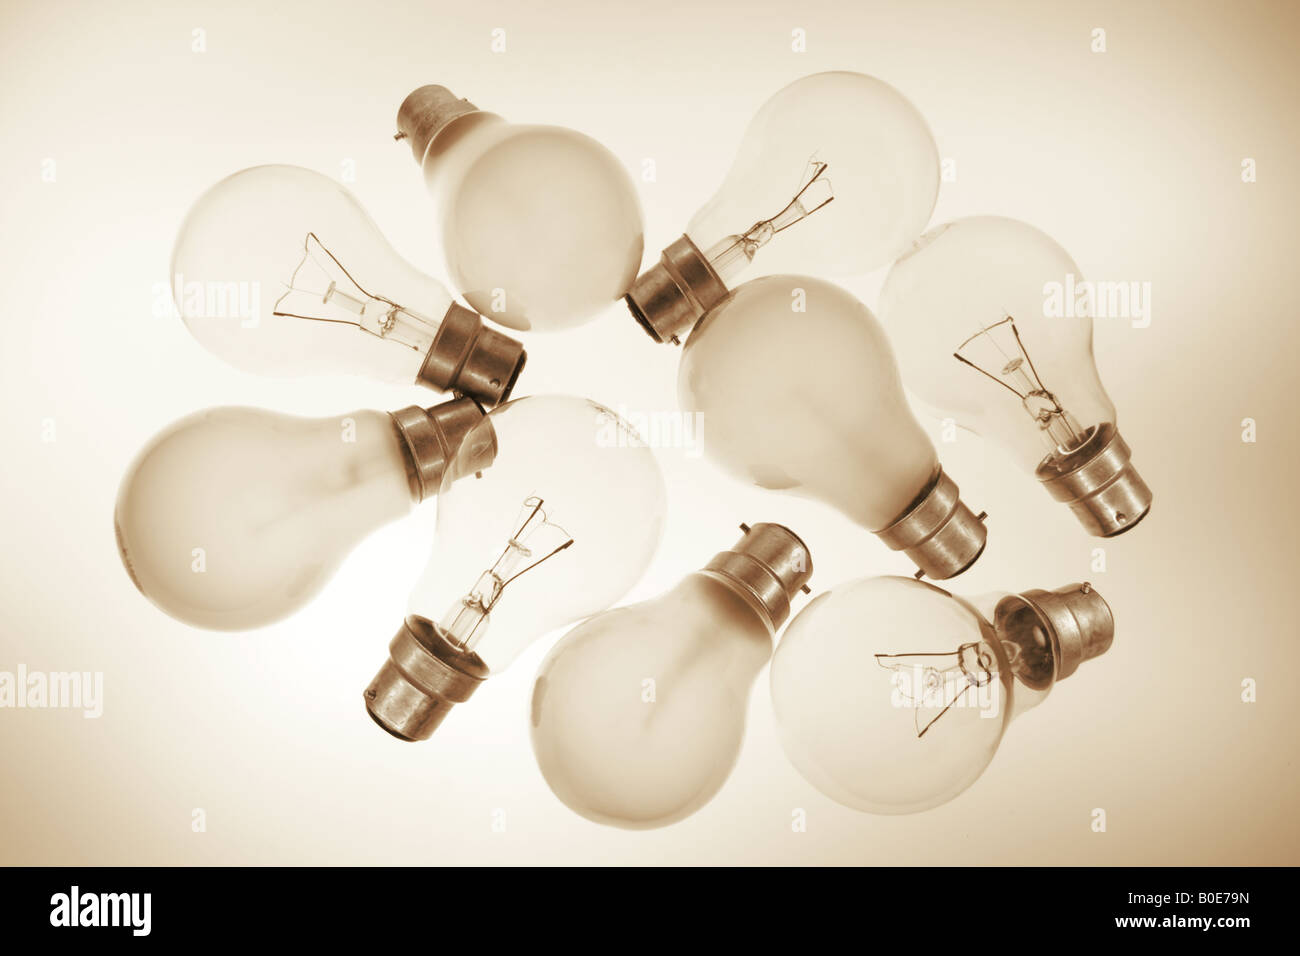 Clear and Frosted Light Bulbs Stock Photo: 17523457 - Alamy